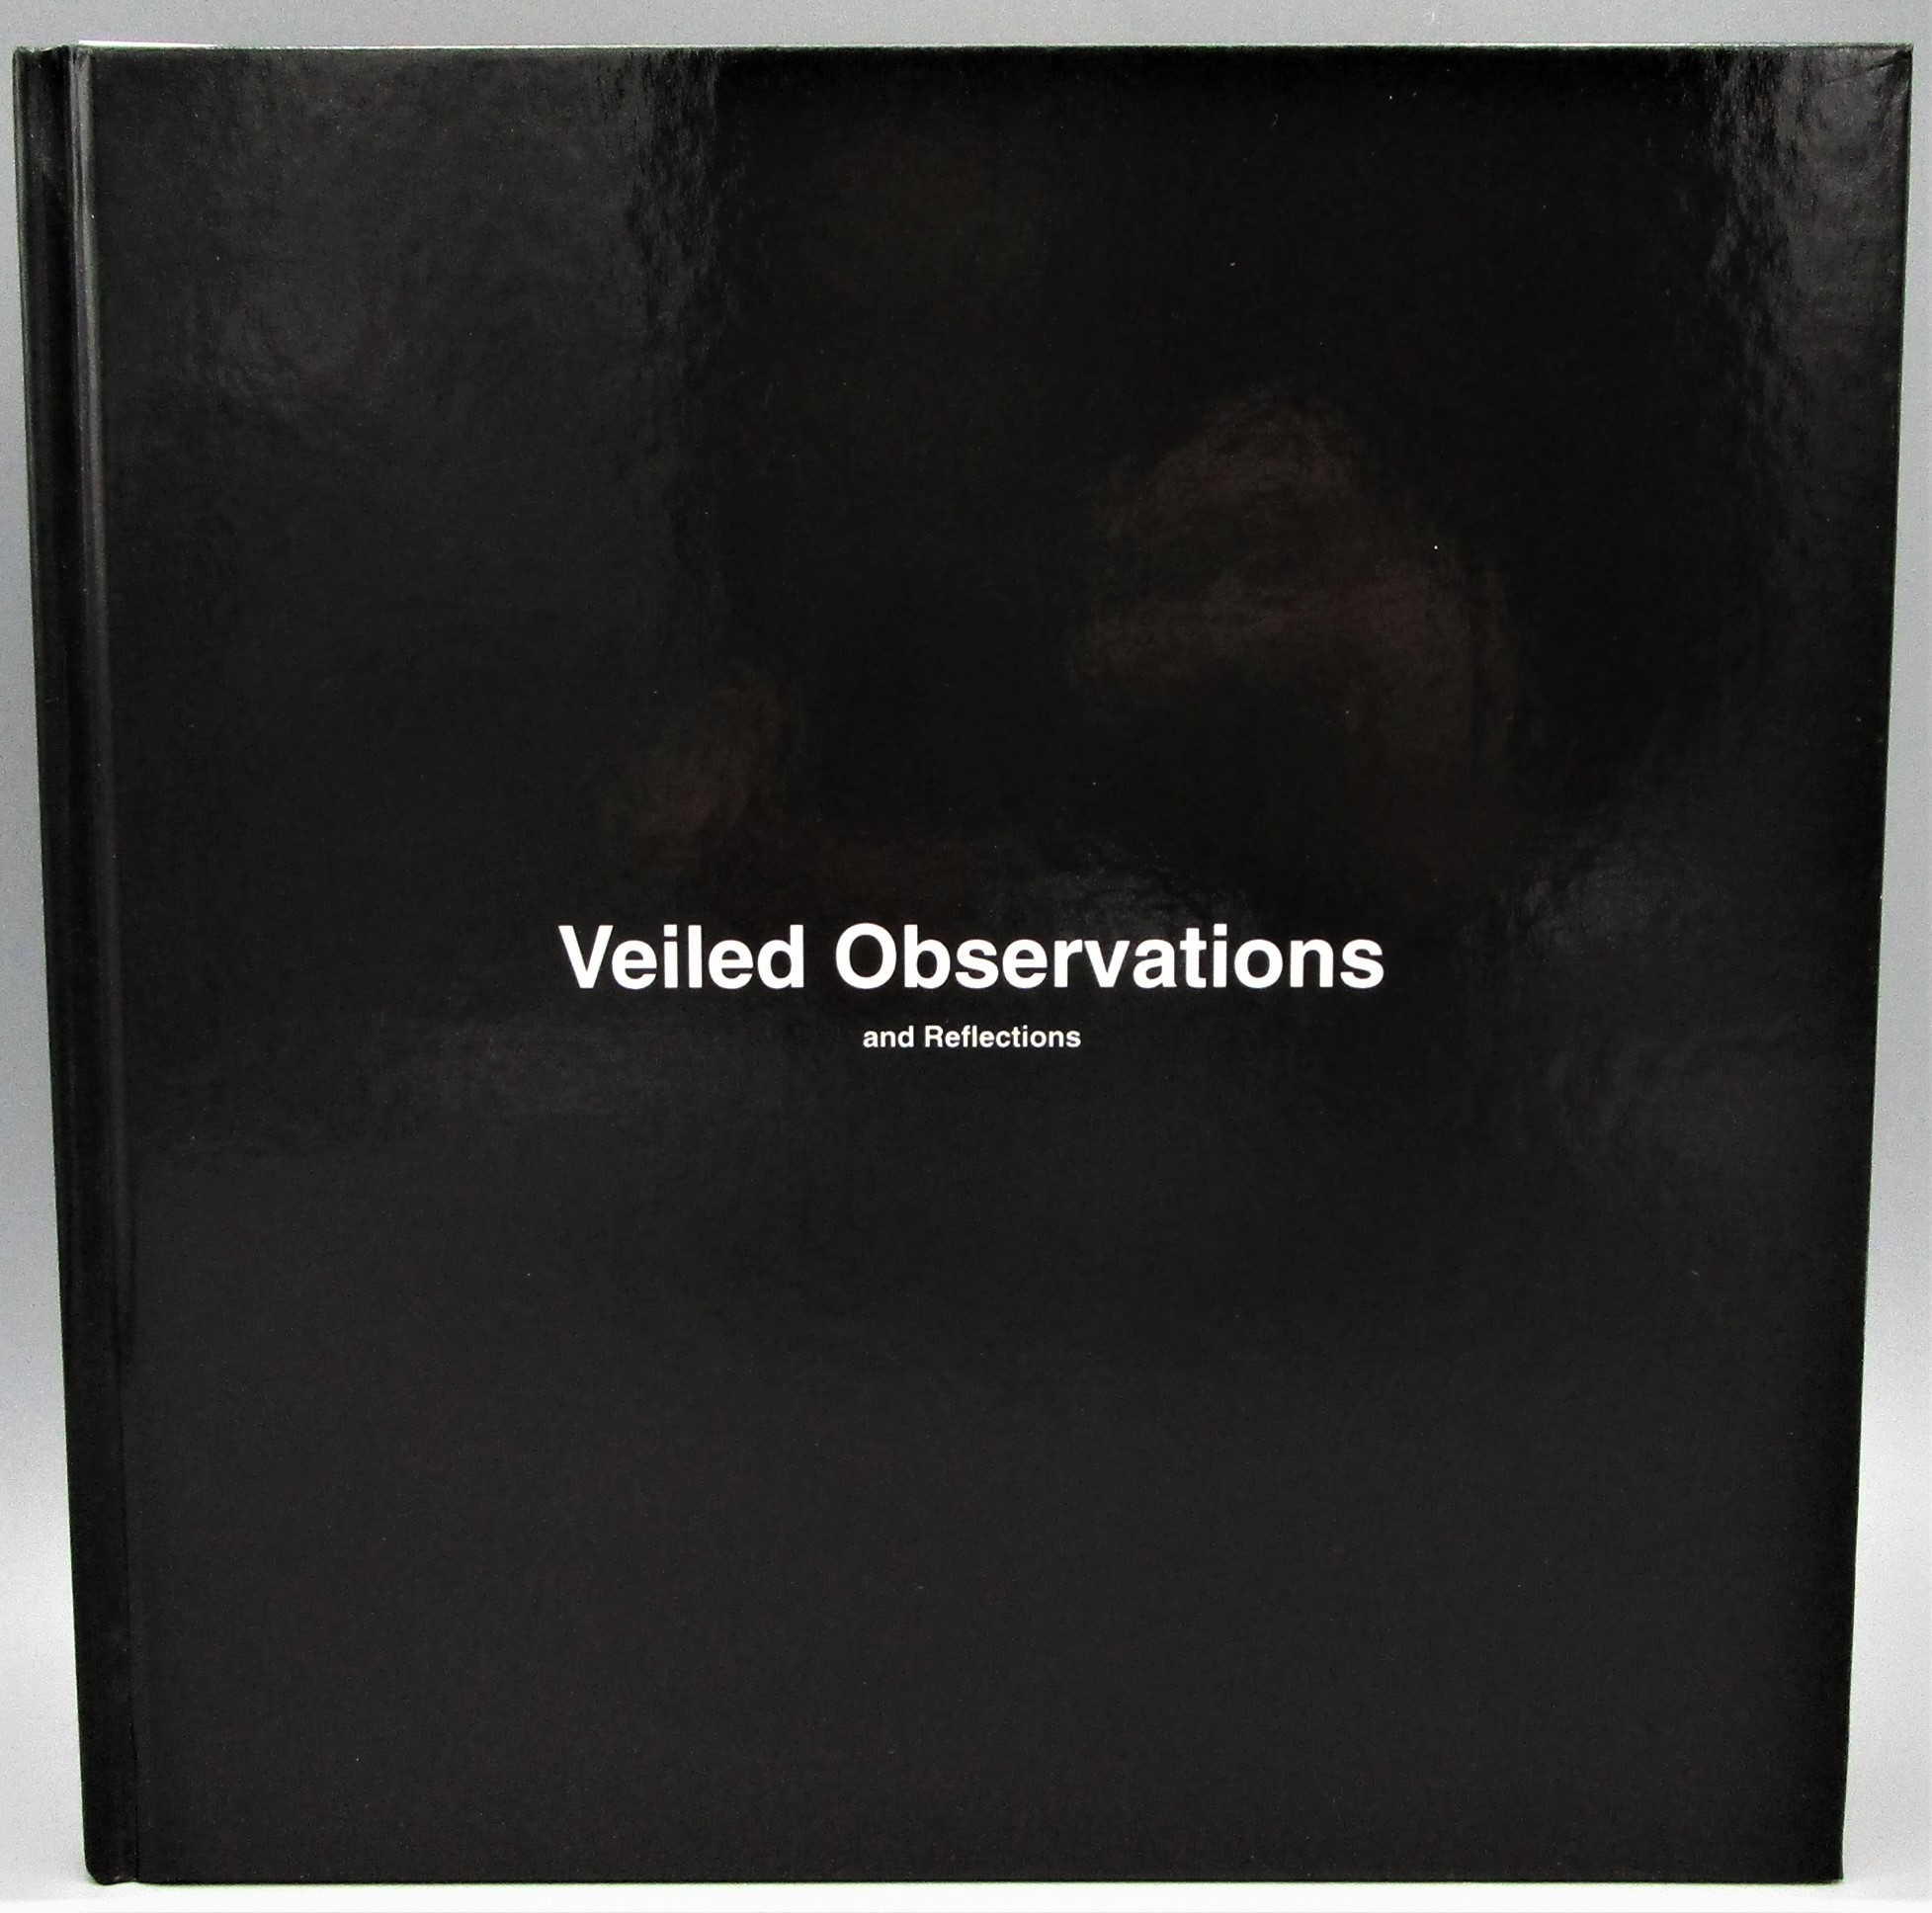 VEILED OBSERVATIONS AND REFLECTIONS, by Hiroshi Watanabe - 2002 [w/Signed Print]